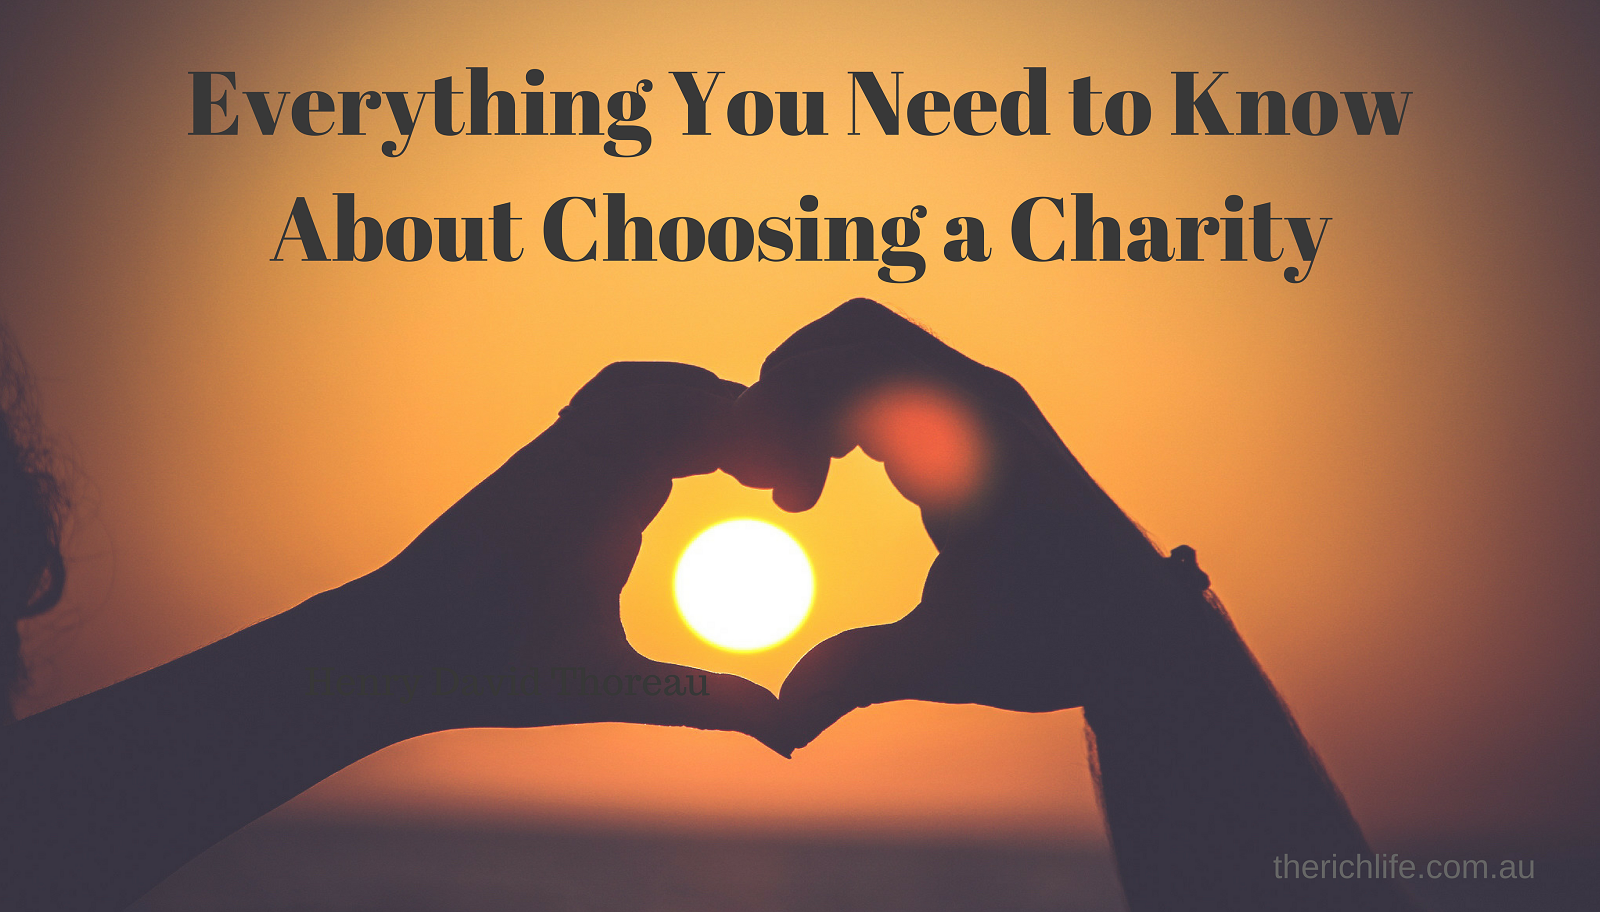 Everything You Need to Know About Choosing a Charity